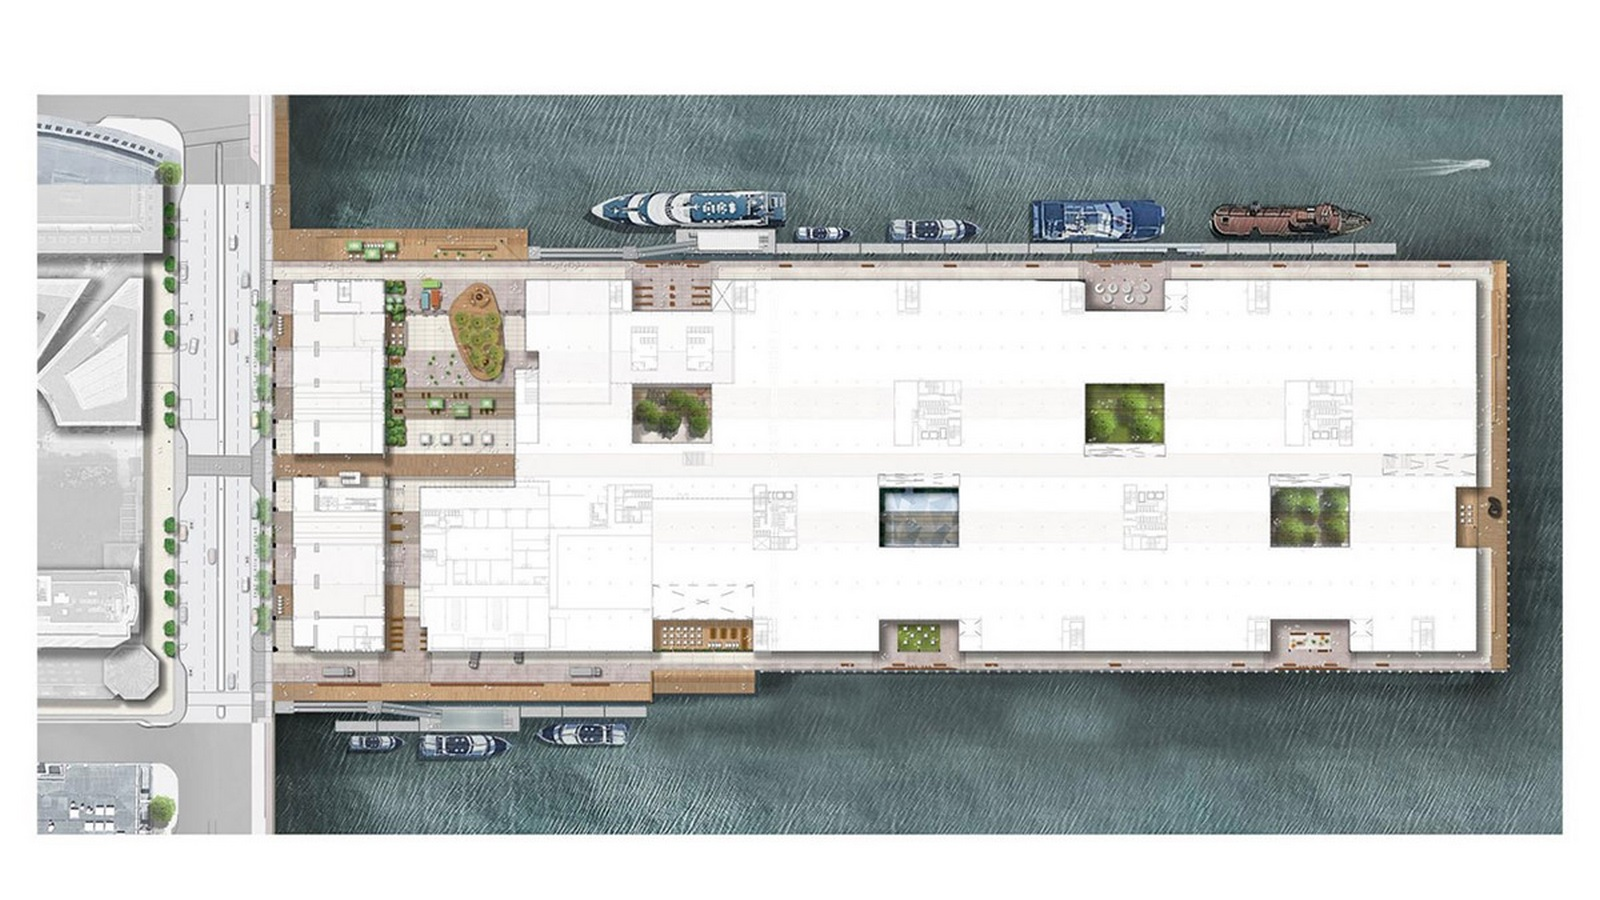 Construction begins on redesigning of Boston's Seaport World Trade Center by Schmidt Hammer Lassen Architects - Sheet7